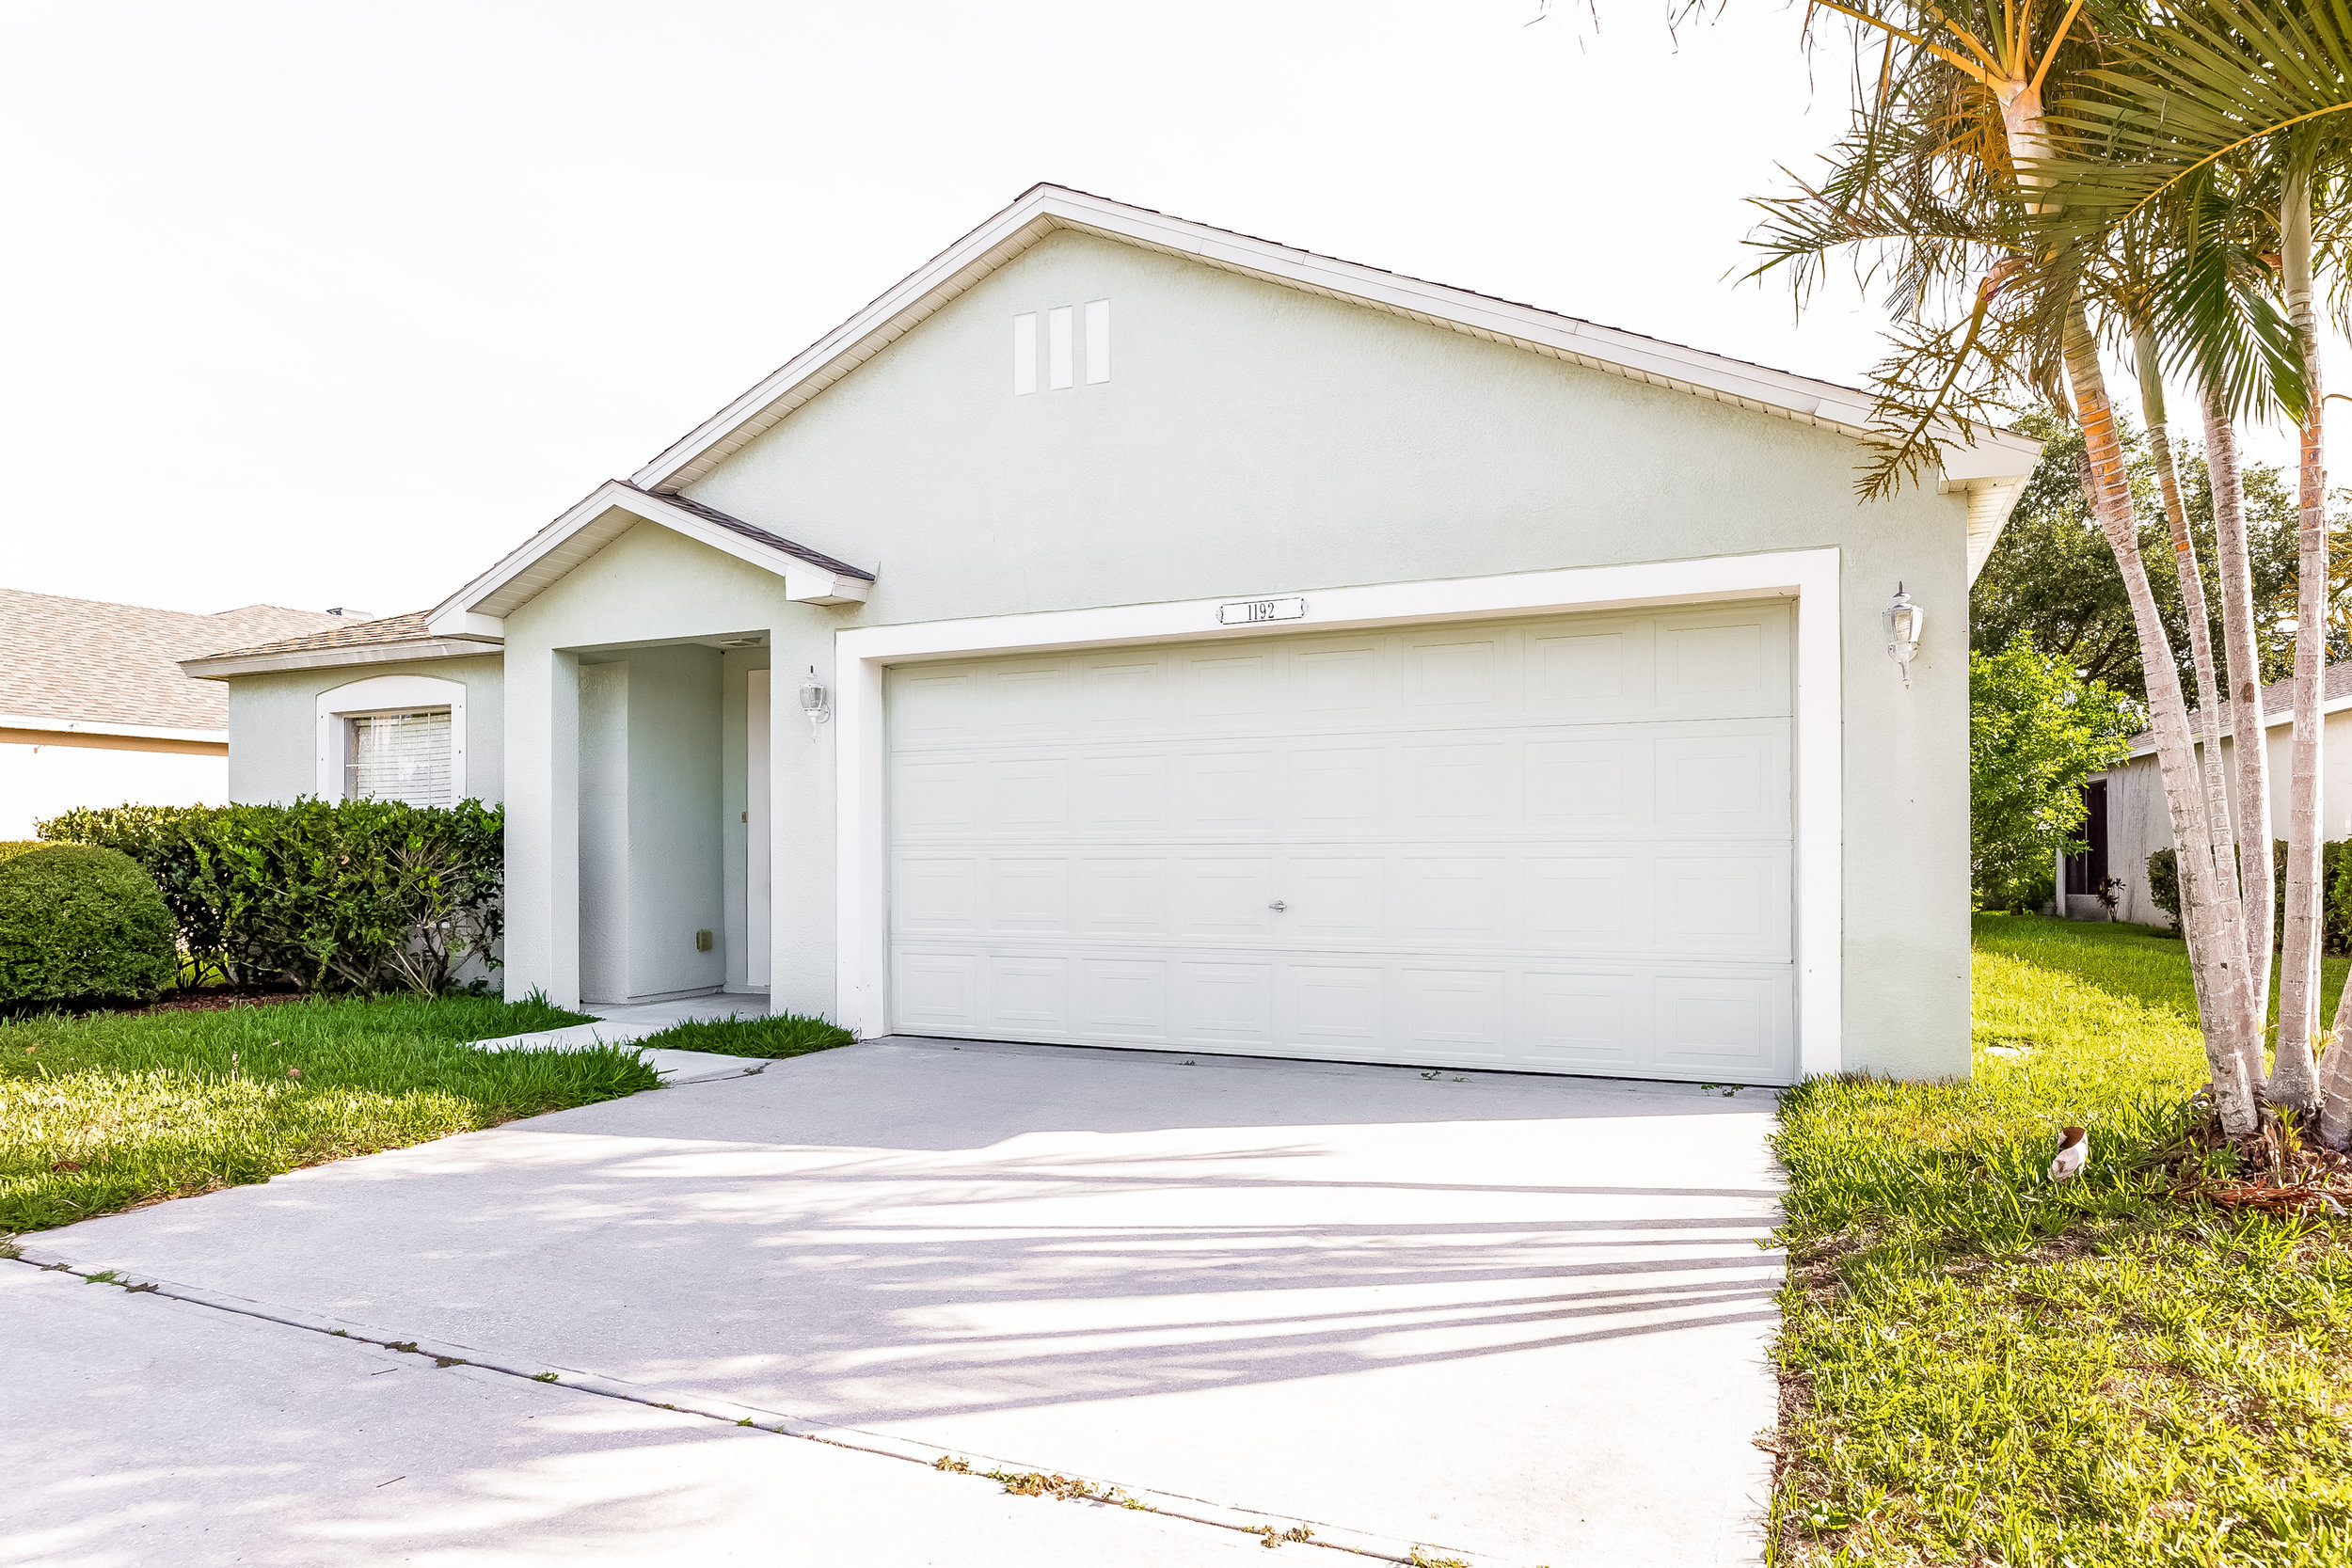 SINGLE PHOTO — $50 - — 1 FRONT EXTERIOR PHOTO— INTERIOR NOT PHOTO-READY BUT NEED TO GET YOUR LISTING UP TODAY?— GET 1 HIGH-QUALITY EXTERIOR PHOTO WITHIN HOURS AND GET YOUR PROPERTY SOLD